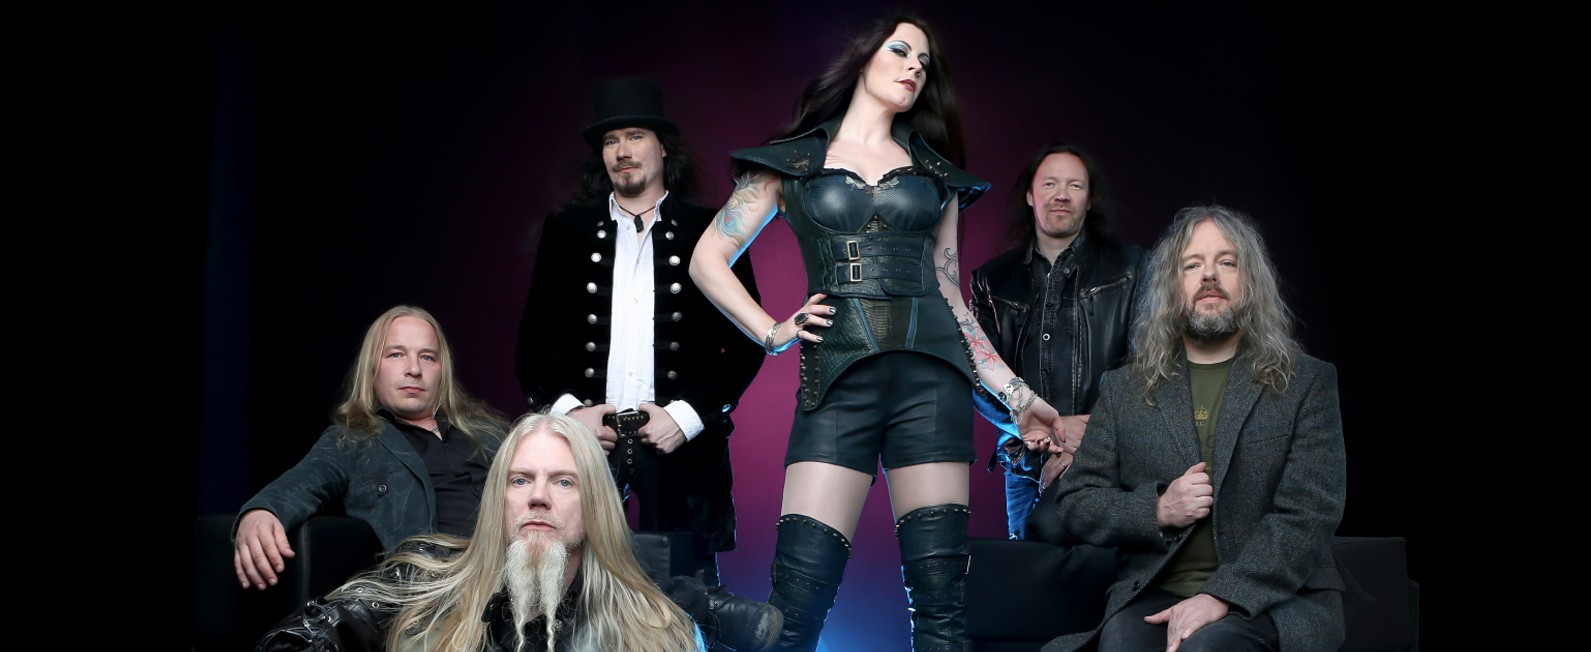 NIGHTWISH 2018 by Tim Tronckoe crop